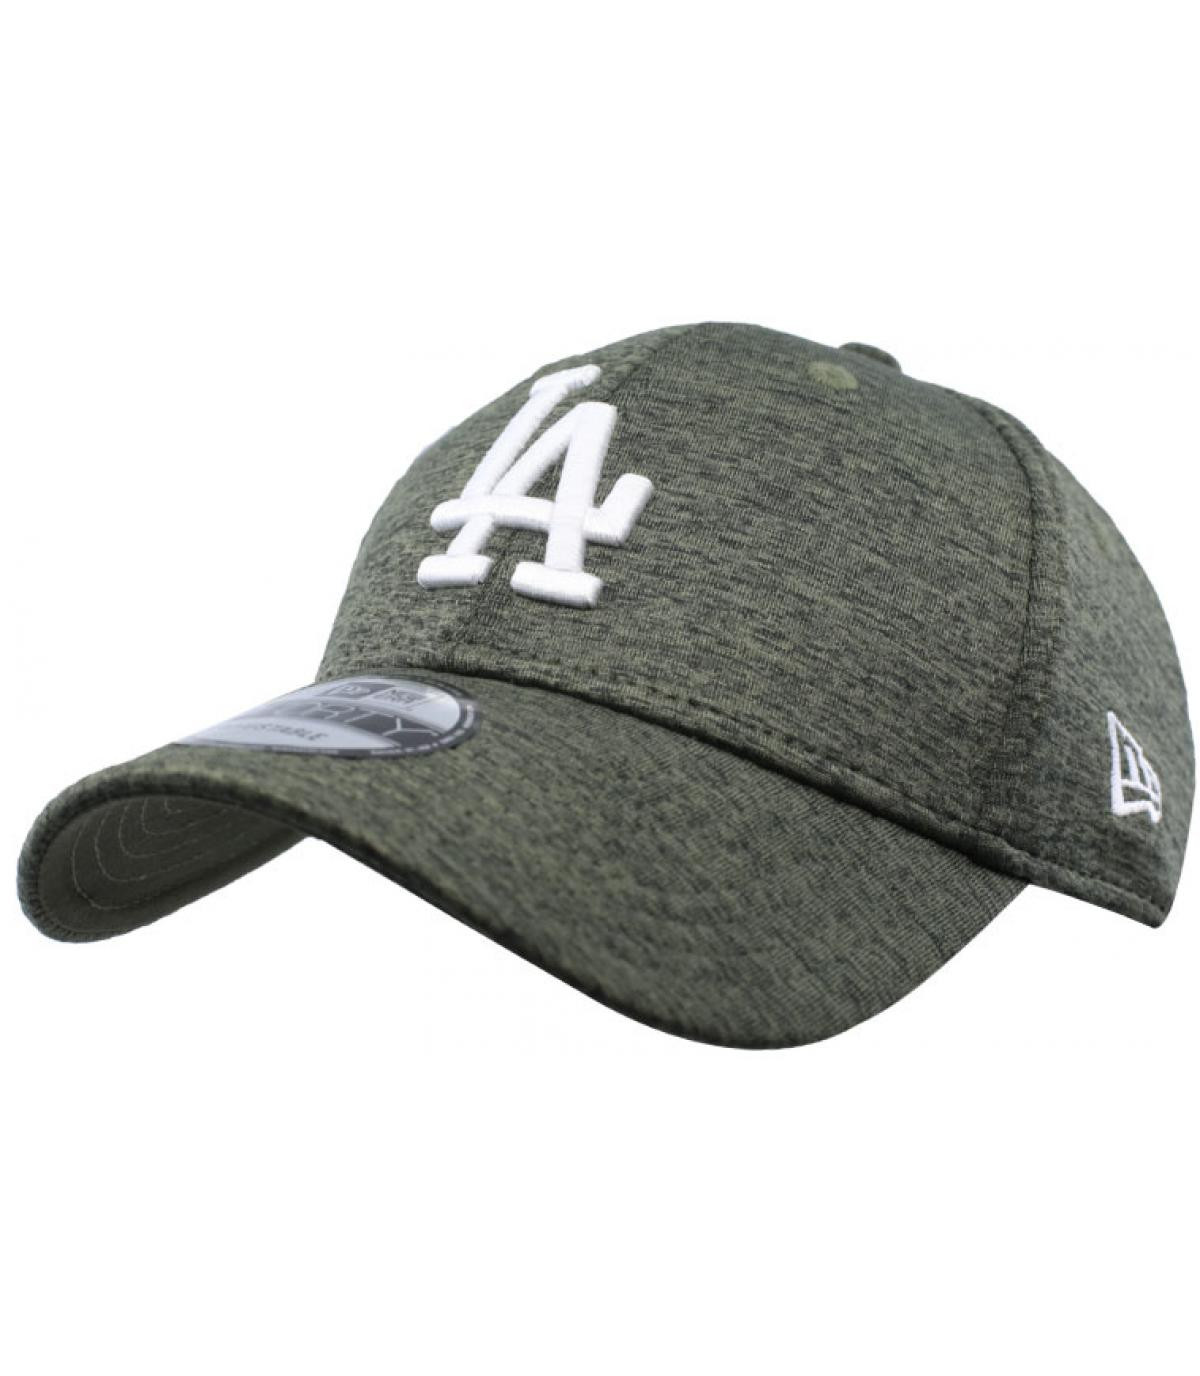 Details Cap LA Dryswitch Jersey 9Forty olive white - Abbildung 1